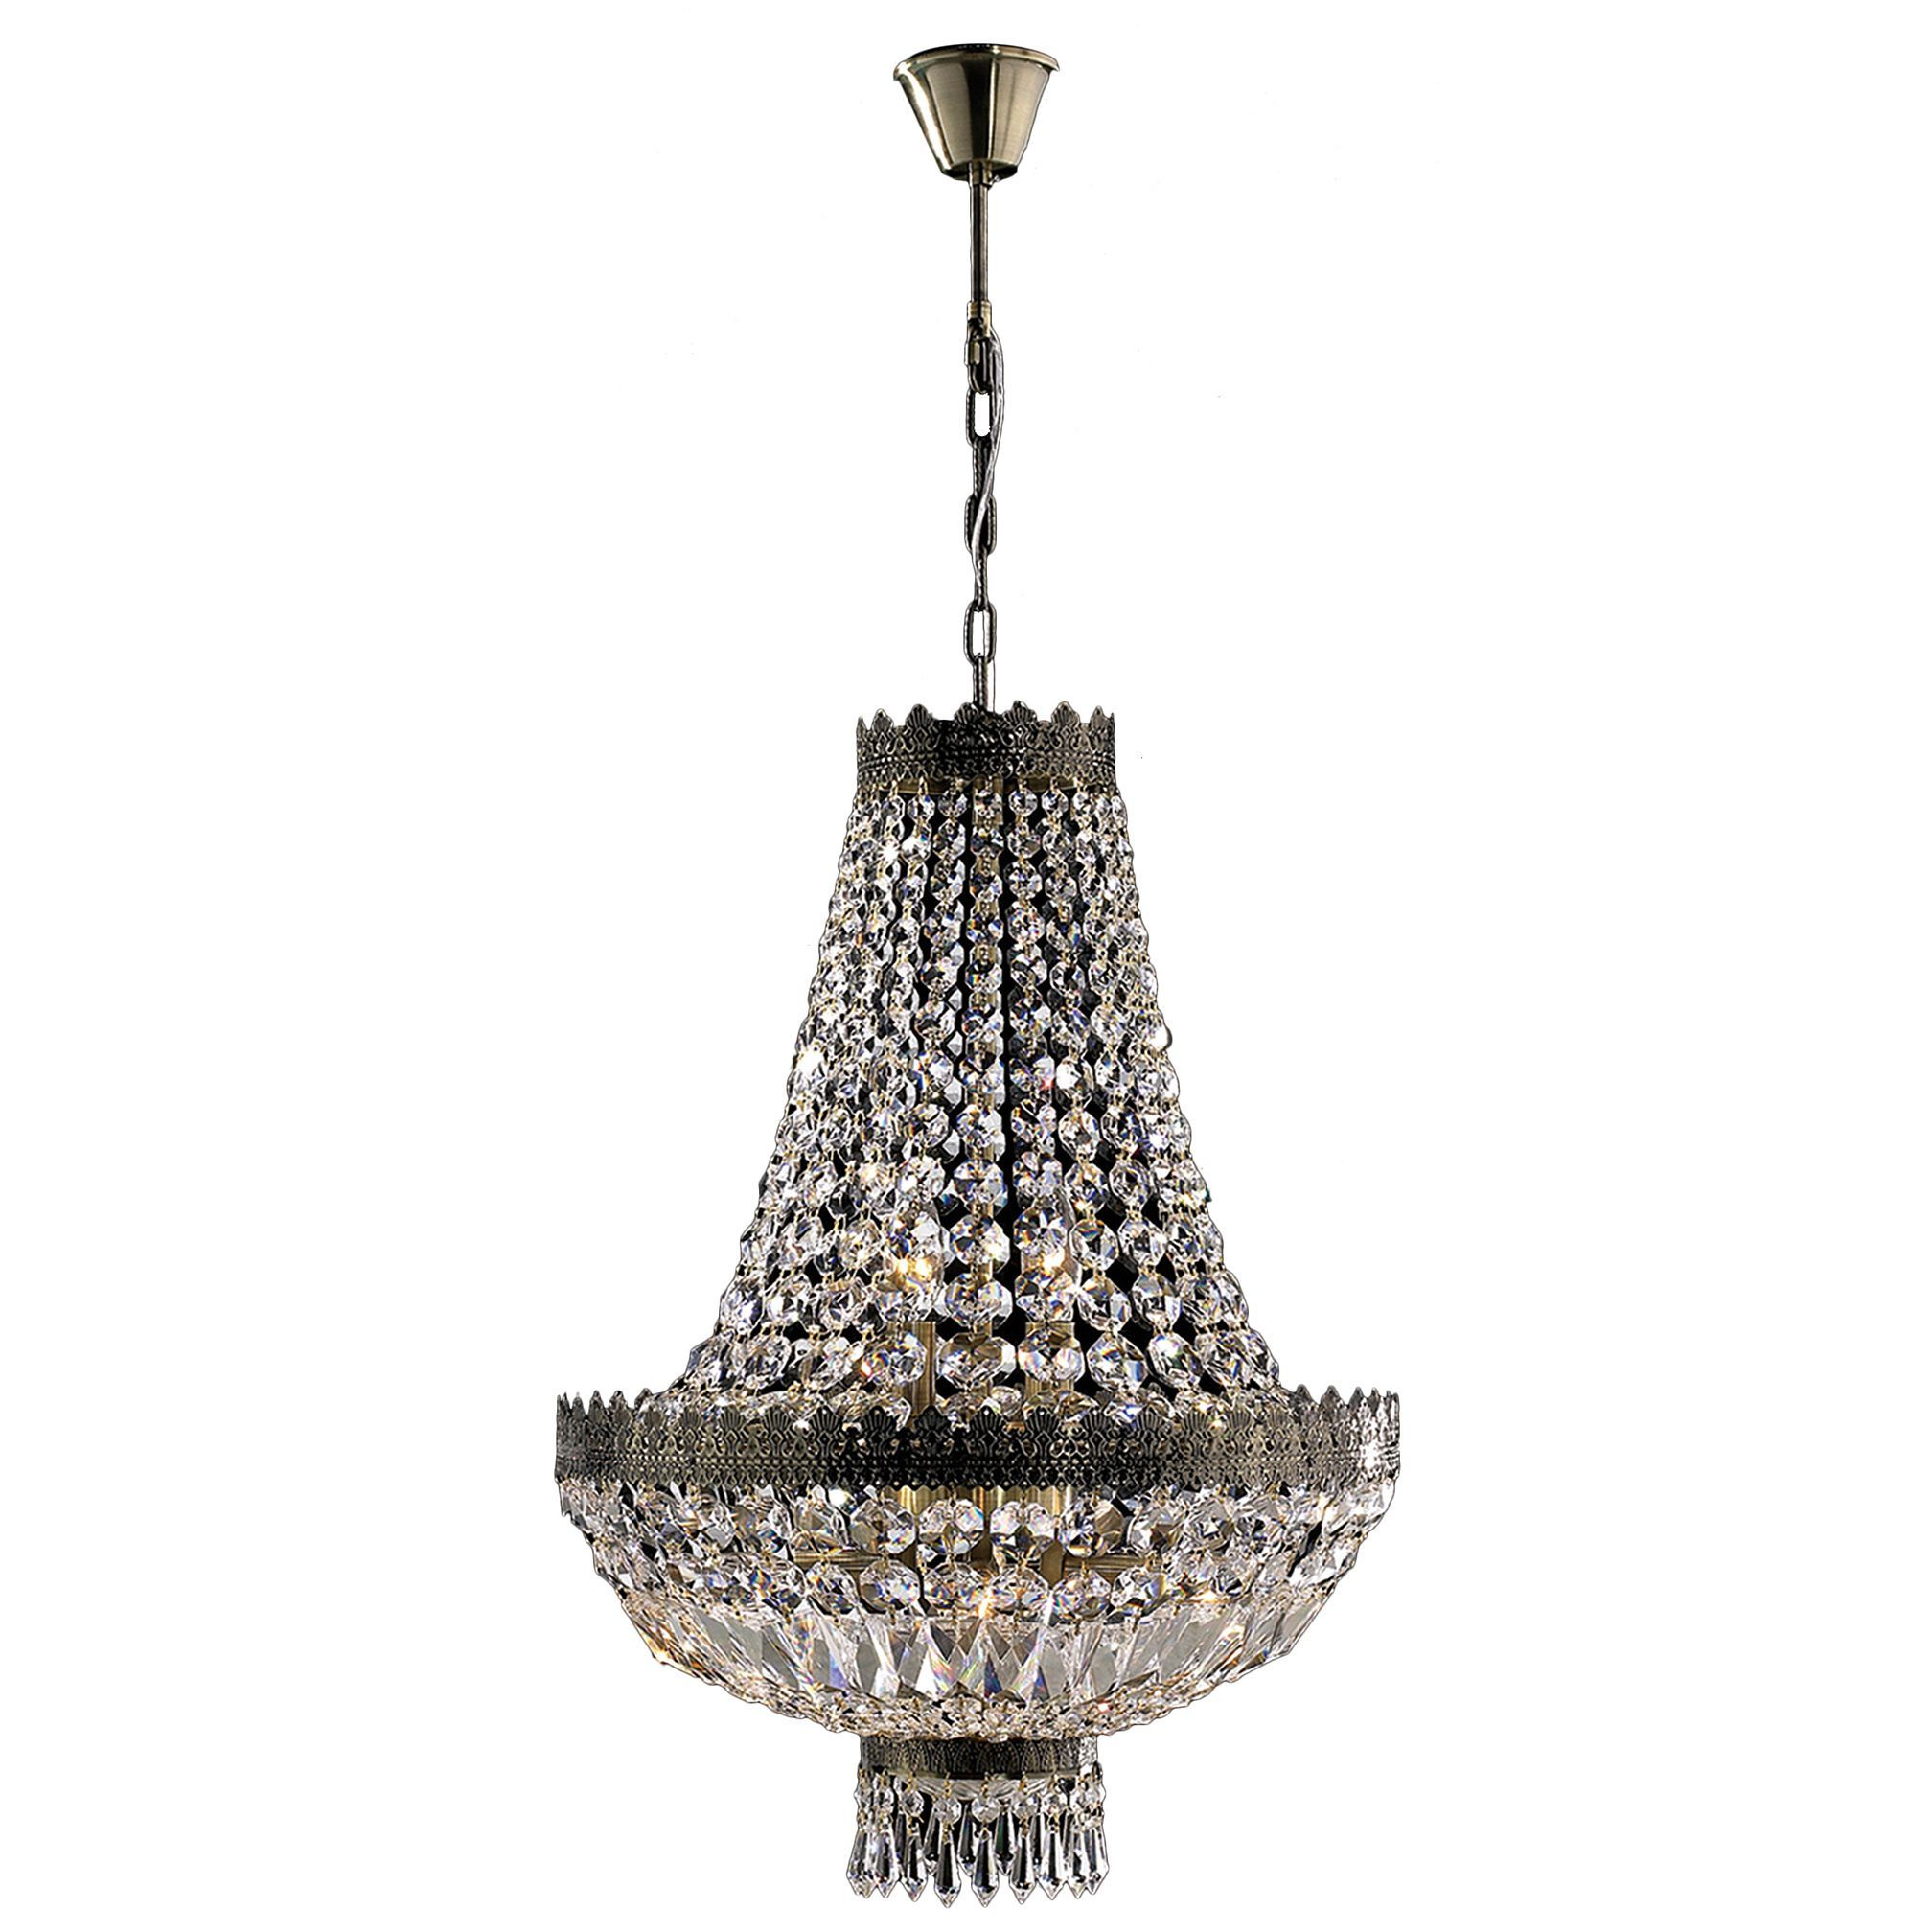 Metro candelabra light antique bronze finish and clear crystal